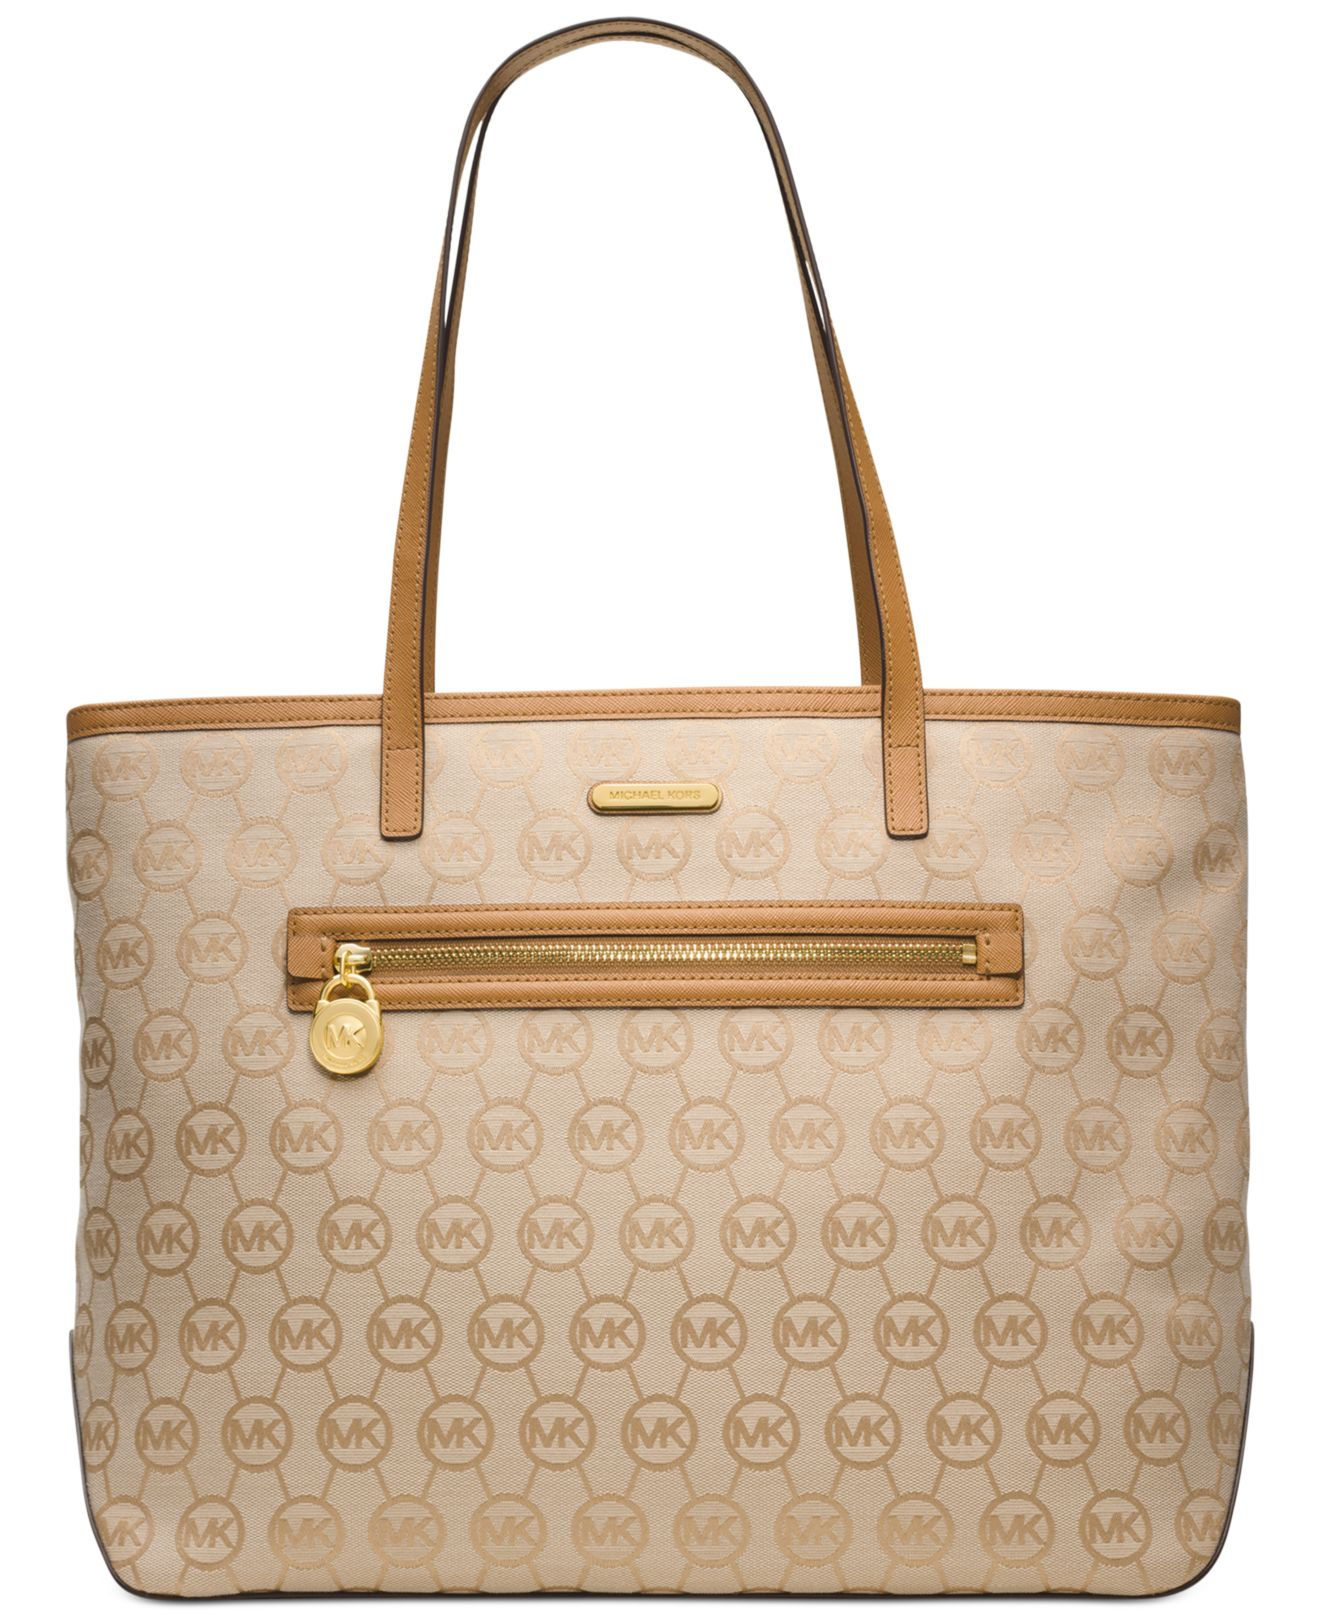 287670fad439 Gallery. Previously sold at: Macy's · Women's Michael By Michael Kors  Kempton ...